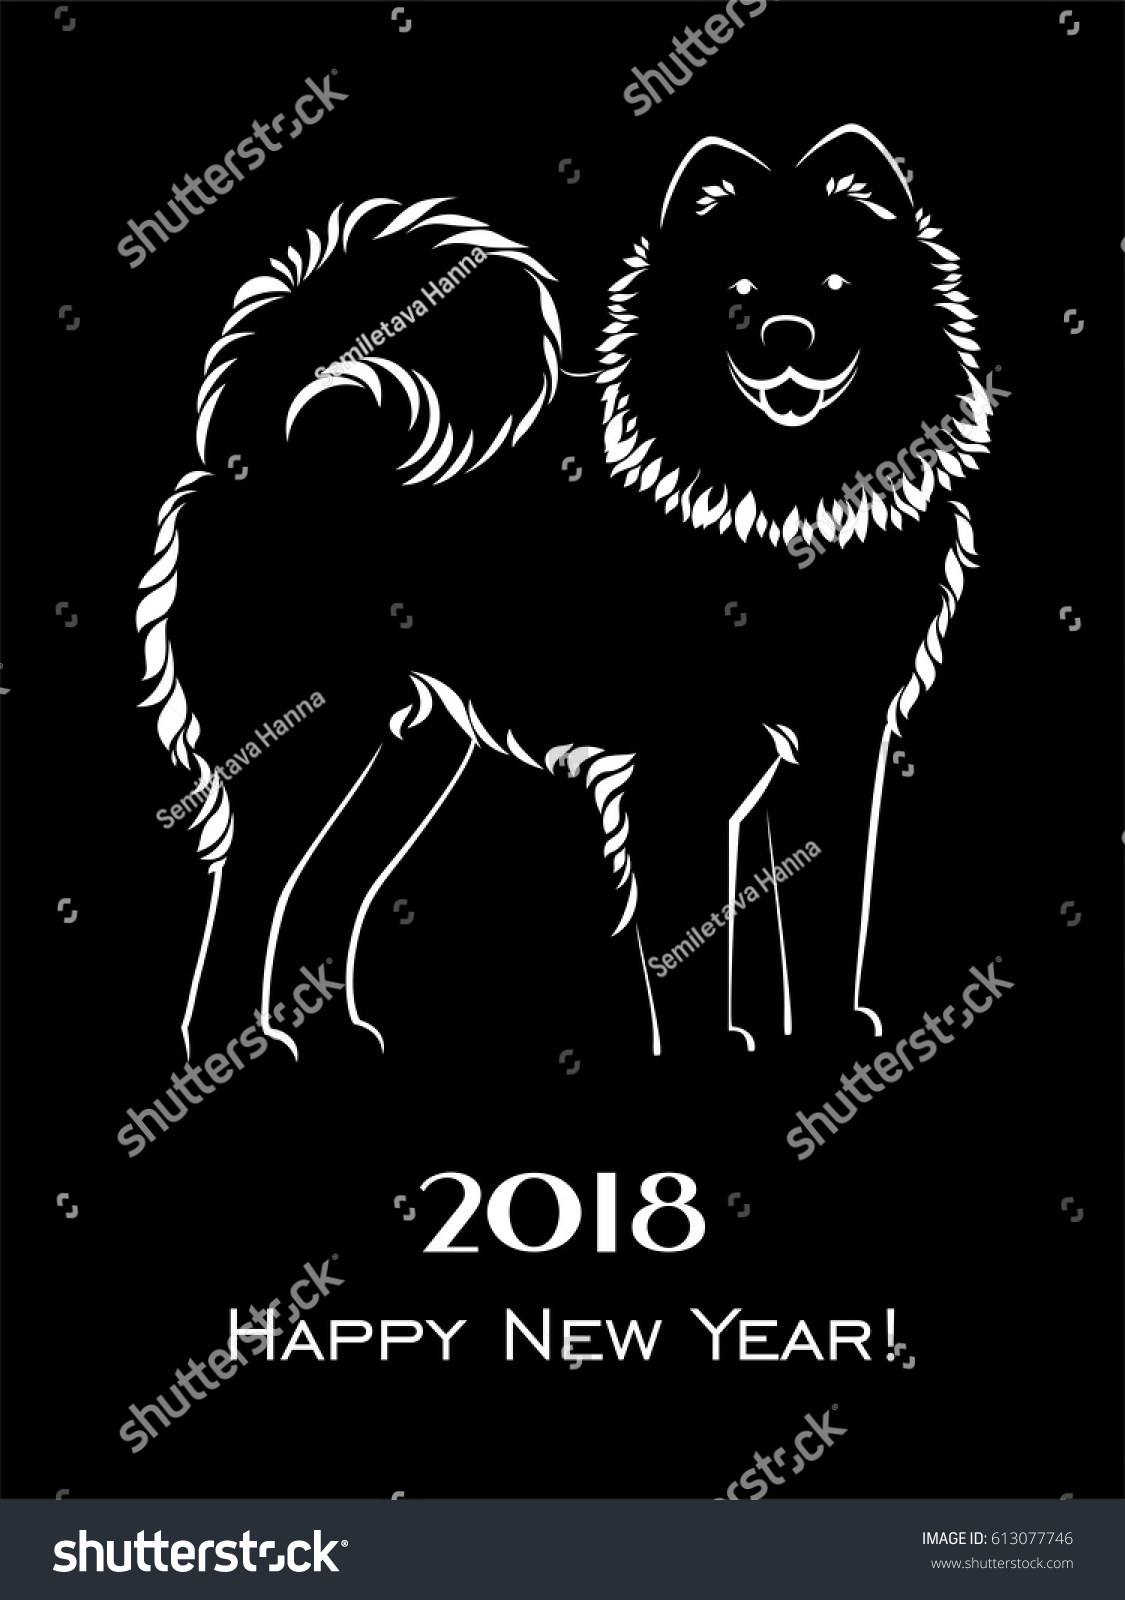 2018 happy new year greeting card stock vector 613077746